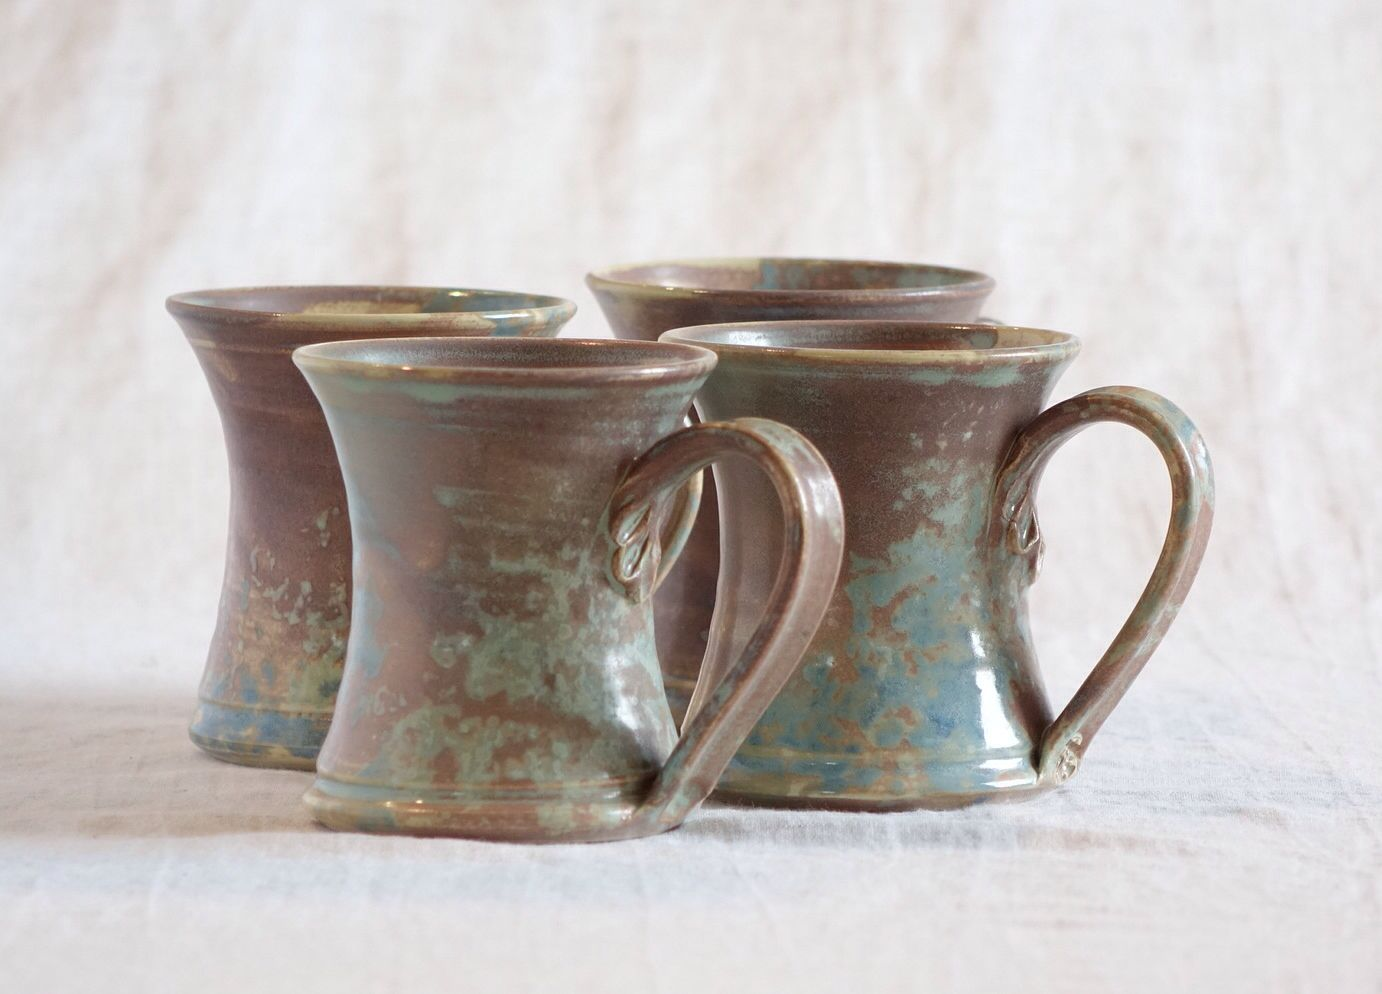 Pin by Kat on Ethridge pottery Pottery, Glassware, Tableware